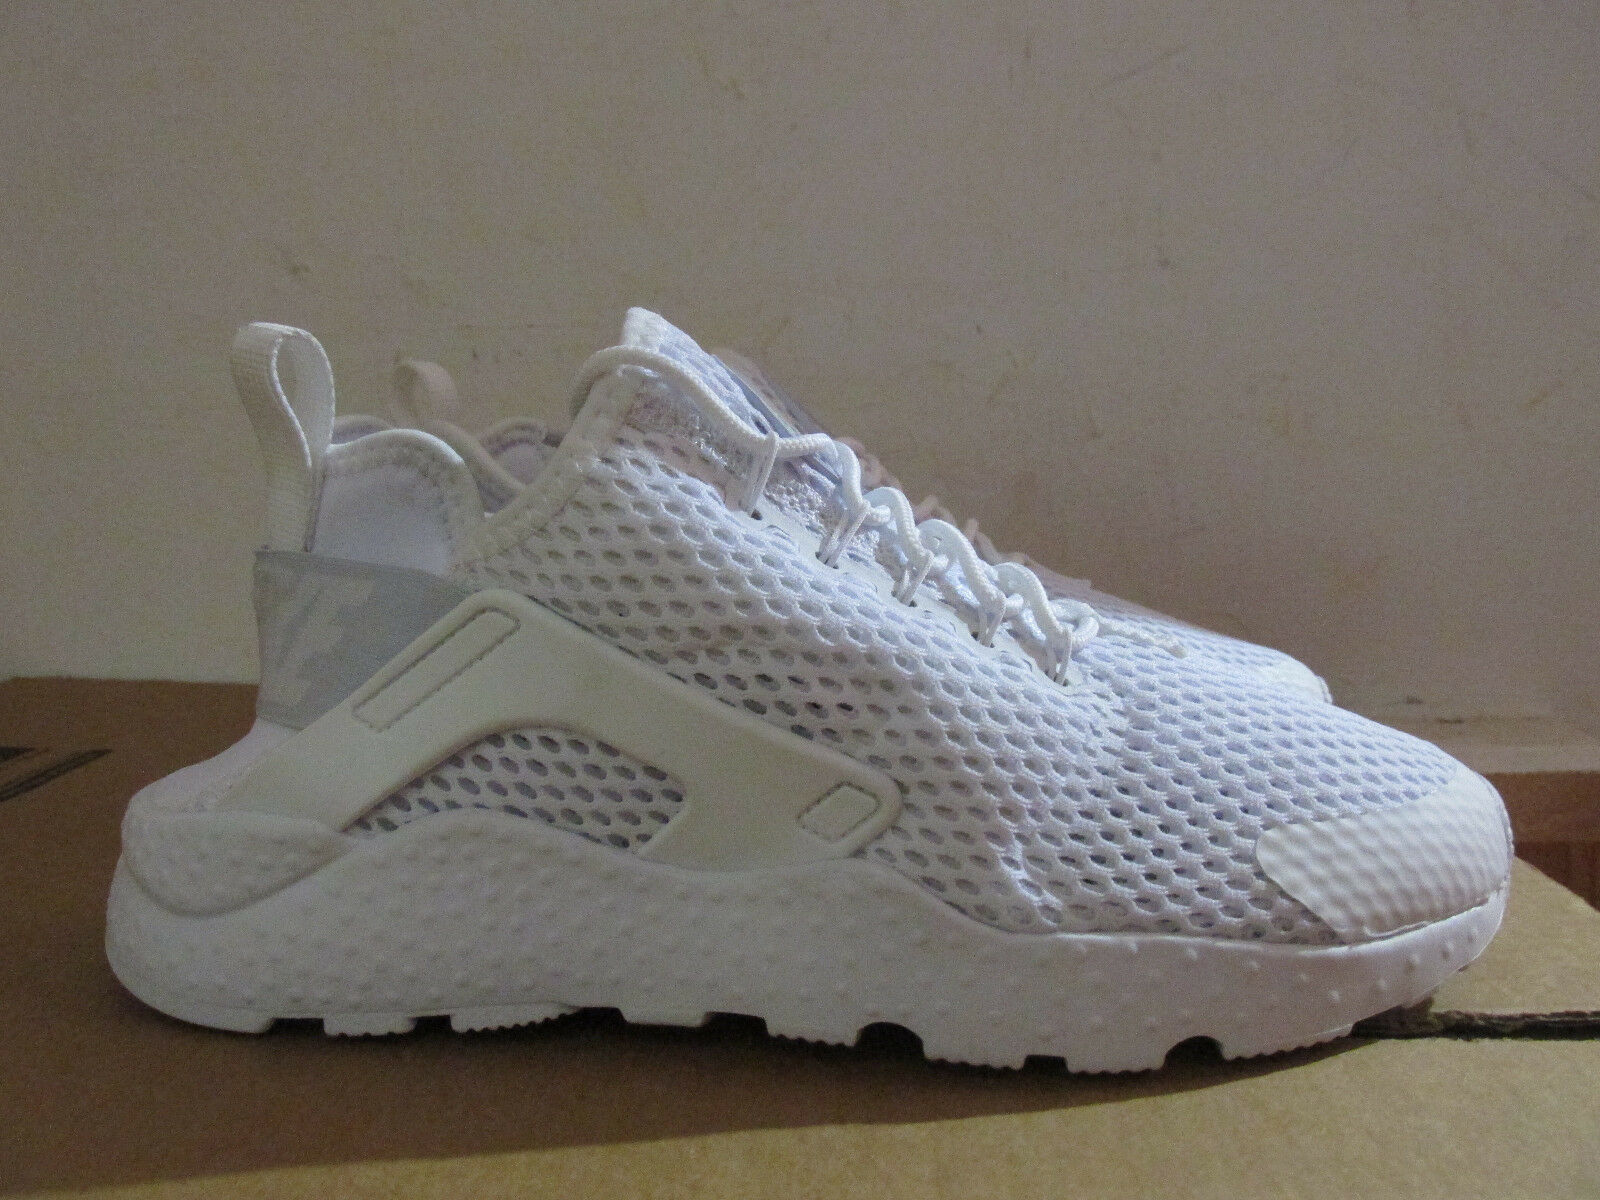 Nike Womens Trainers Huarache Run Ultra BR Trainers Womens 833292 100 Sneakers Shoes CLEARANCE 532a9e